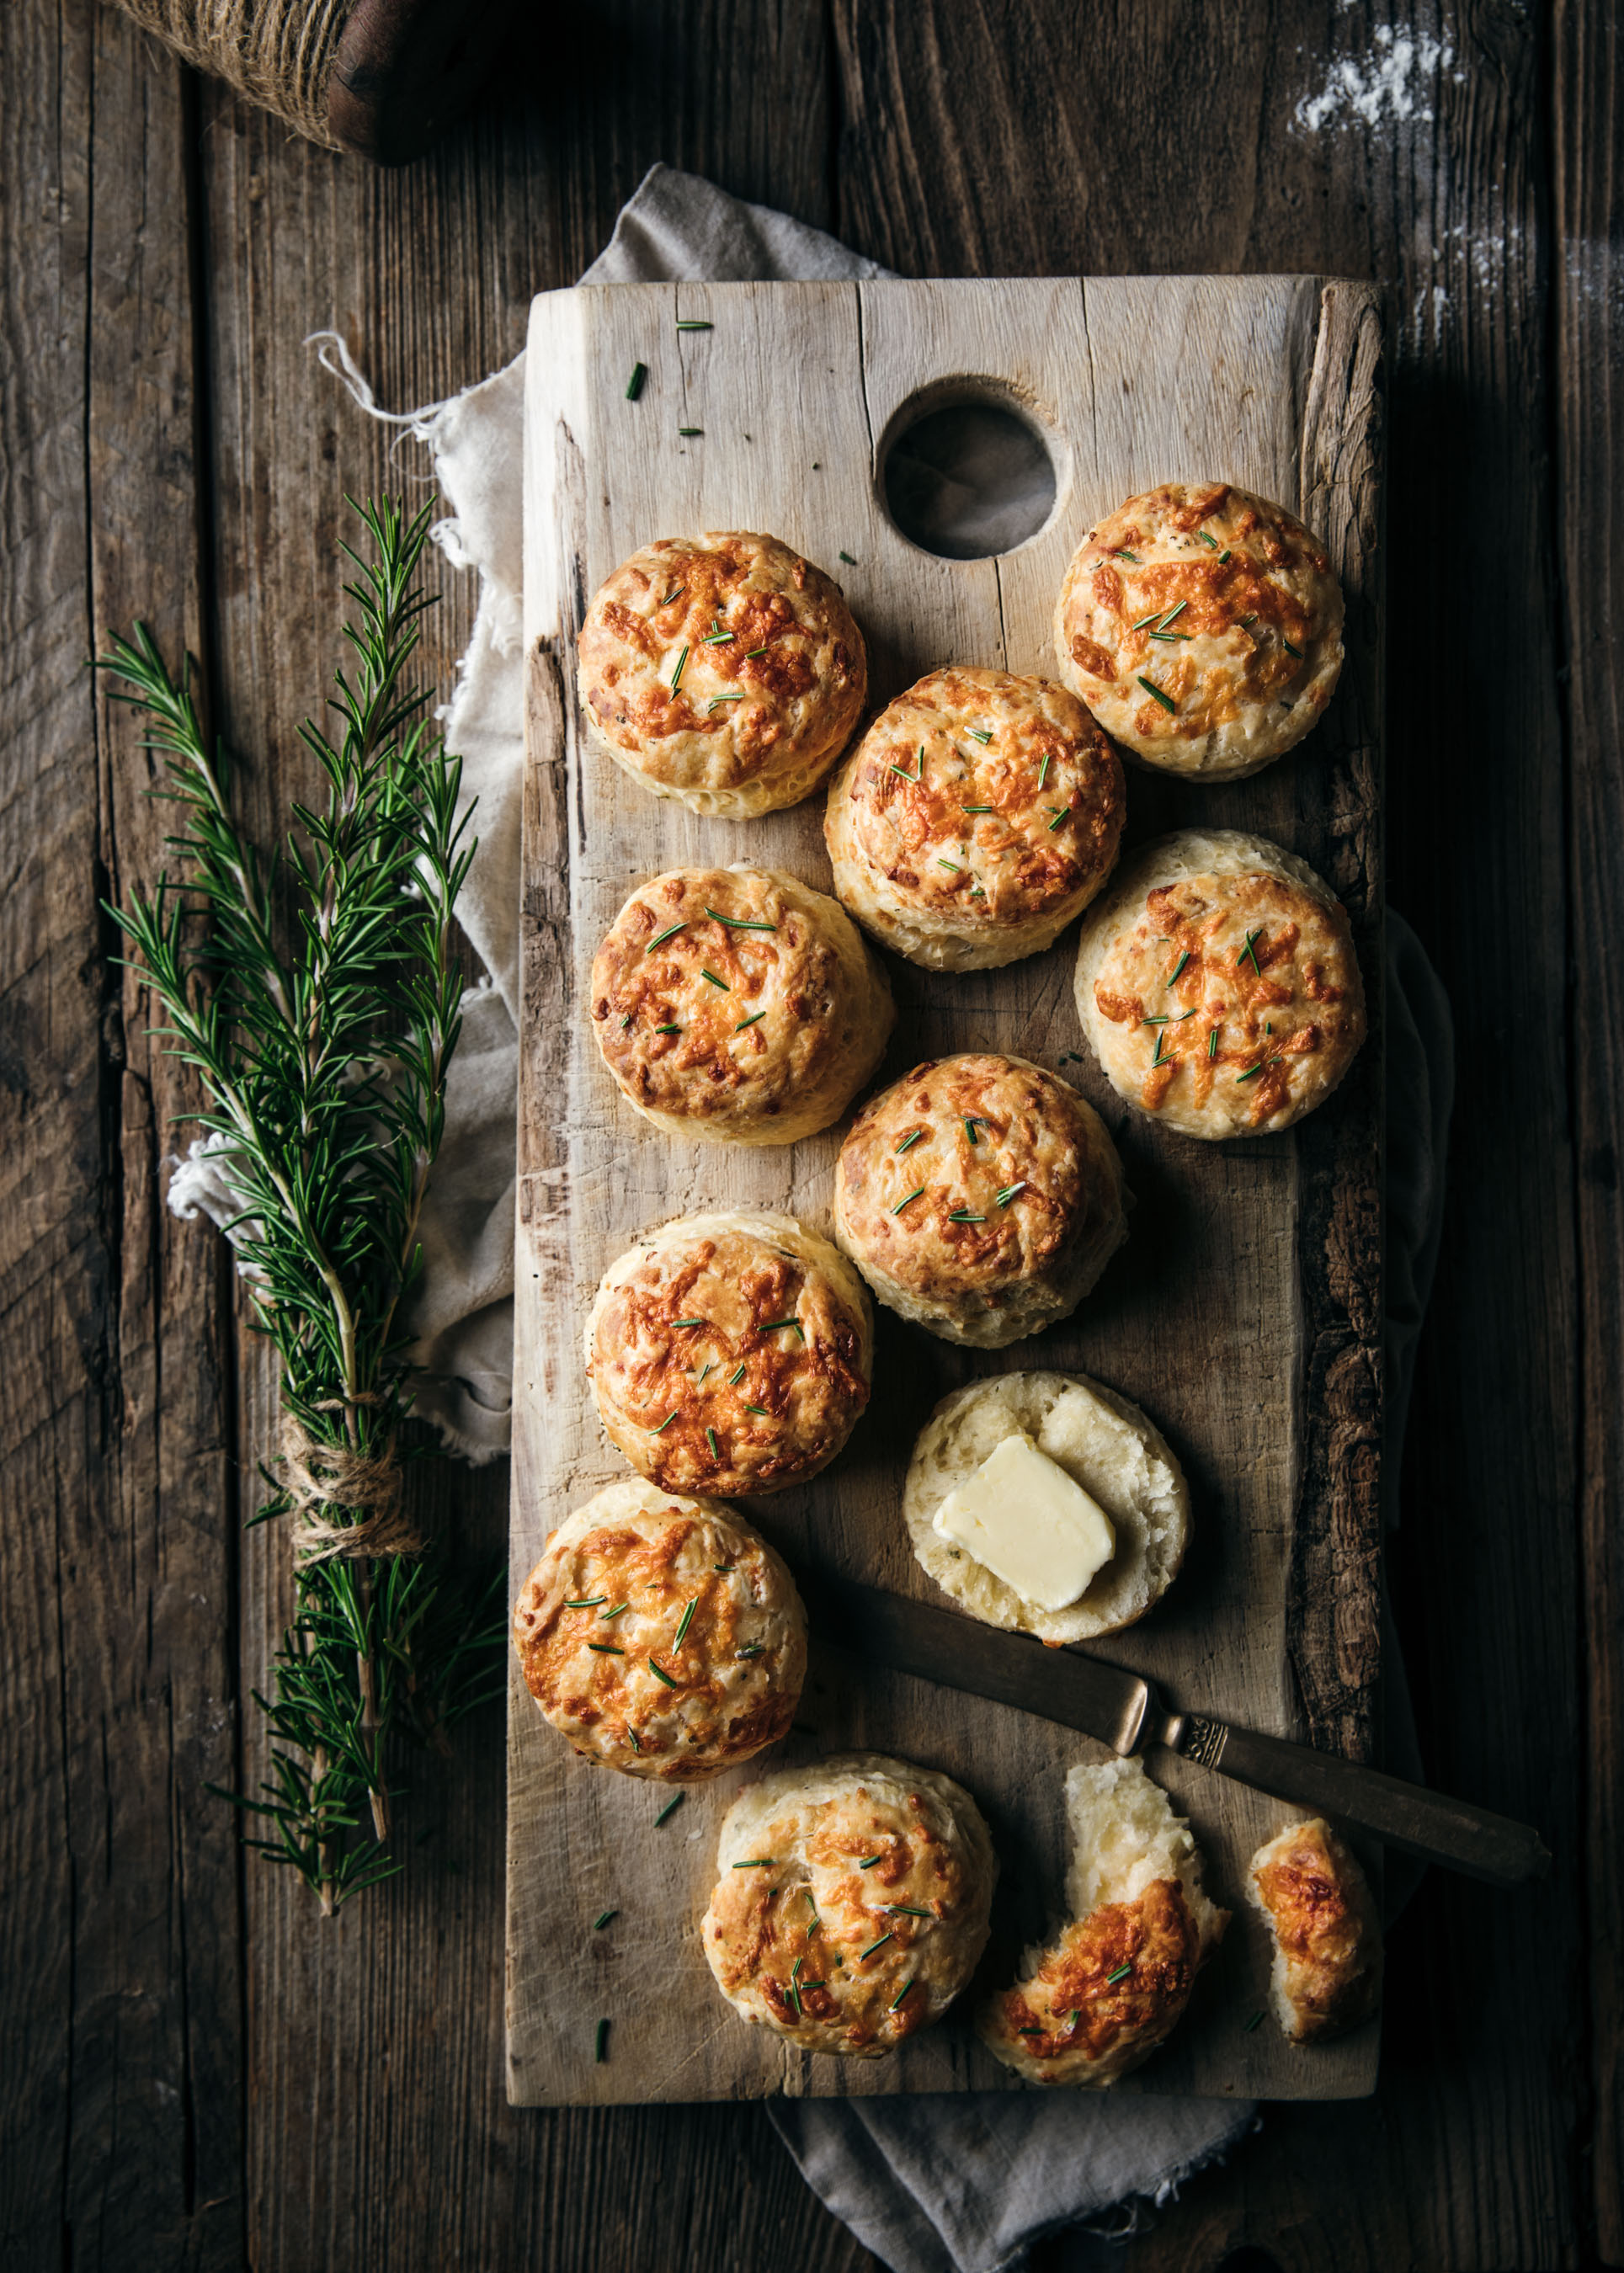 Cheddar Garlic and Rosemary Biscuits